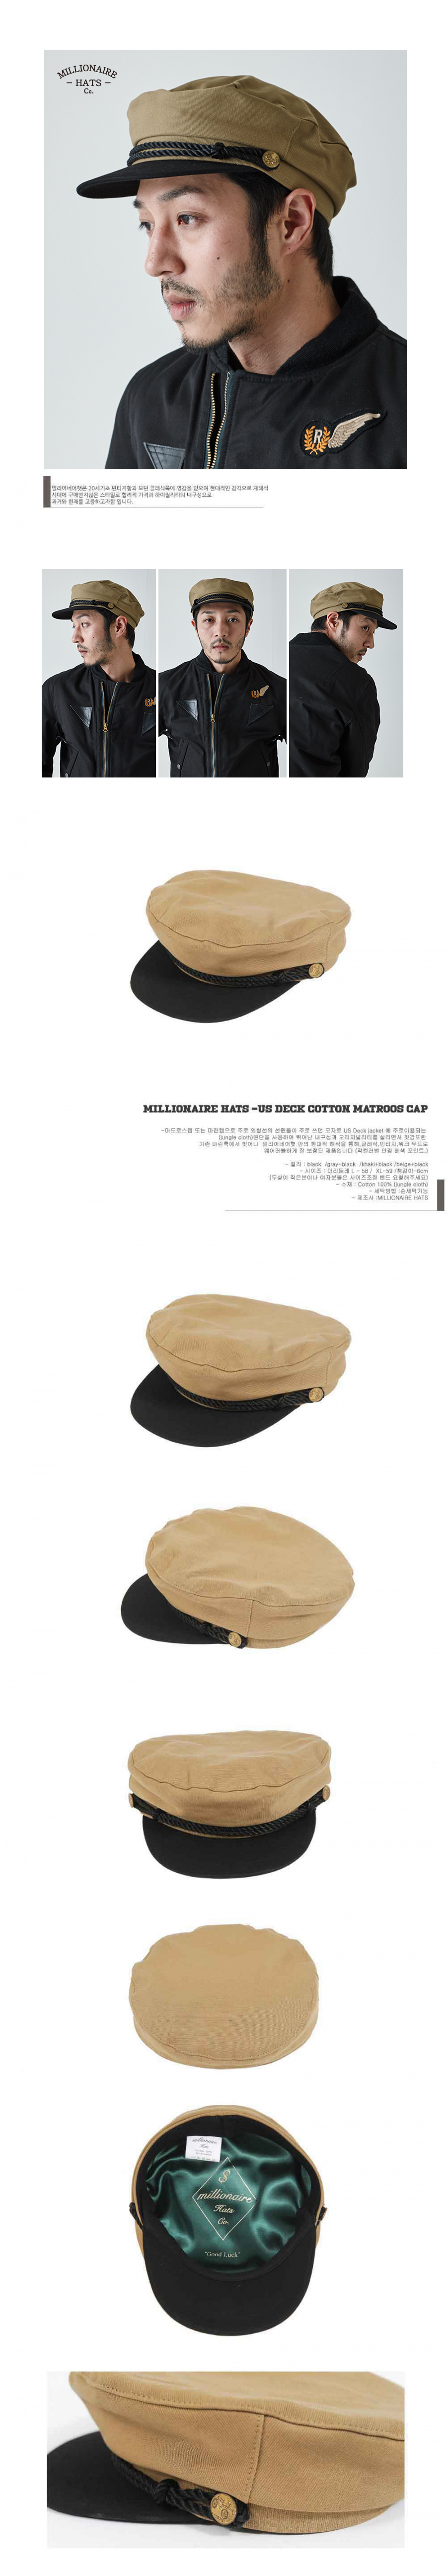 밀리어네어햇(MILLIONAIRE HATS) US DECK COTTON MATROOS CAP [BEIGE/BLACK]